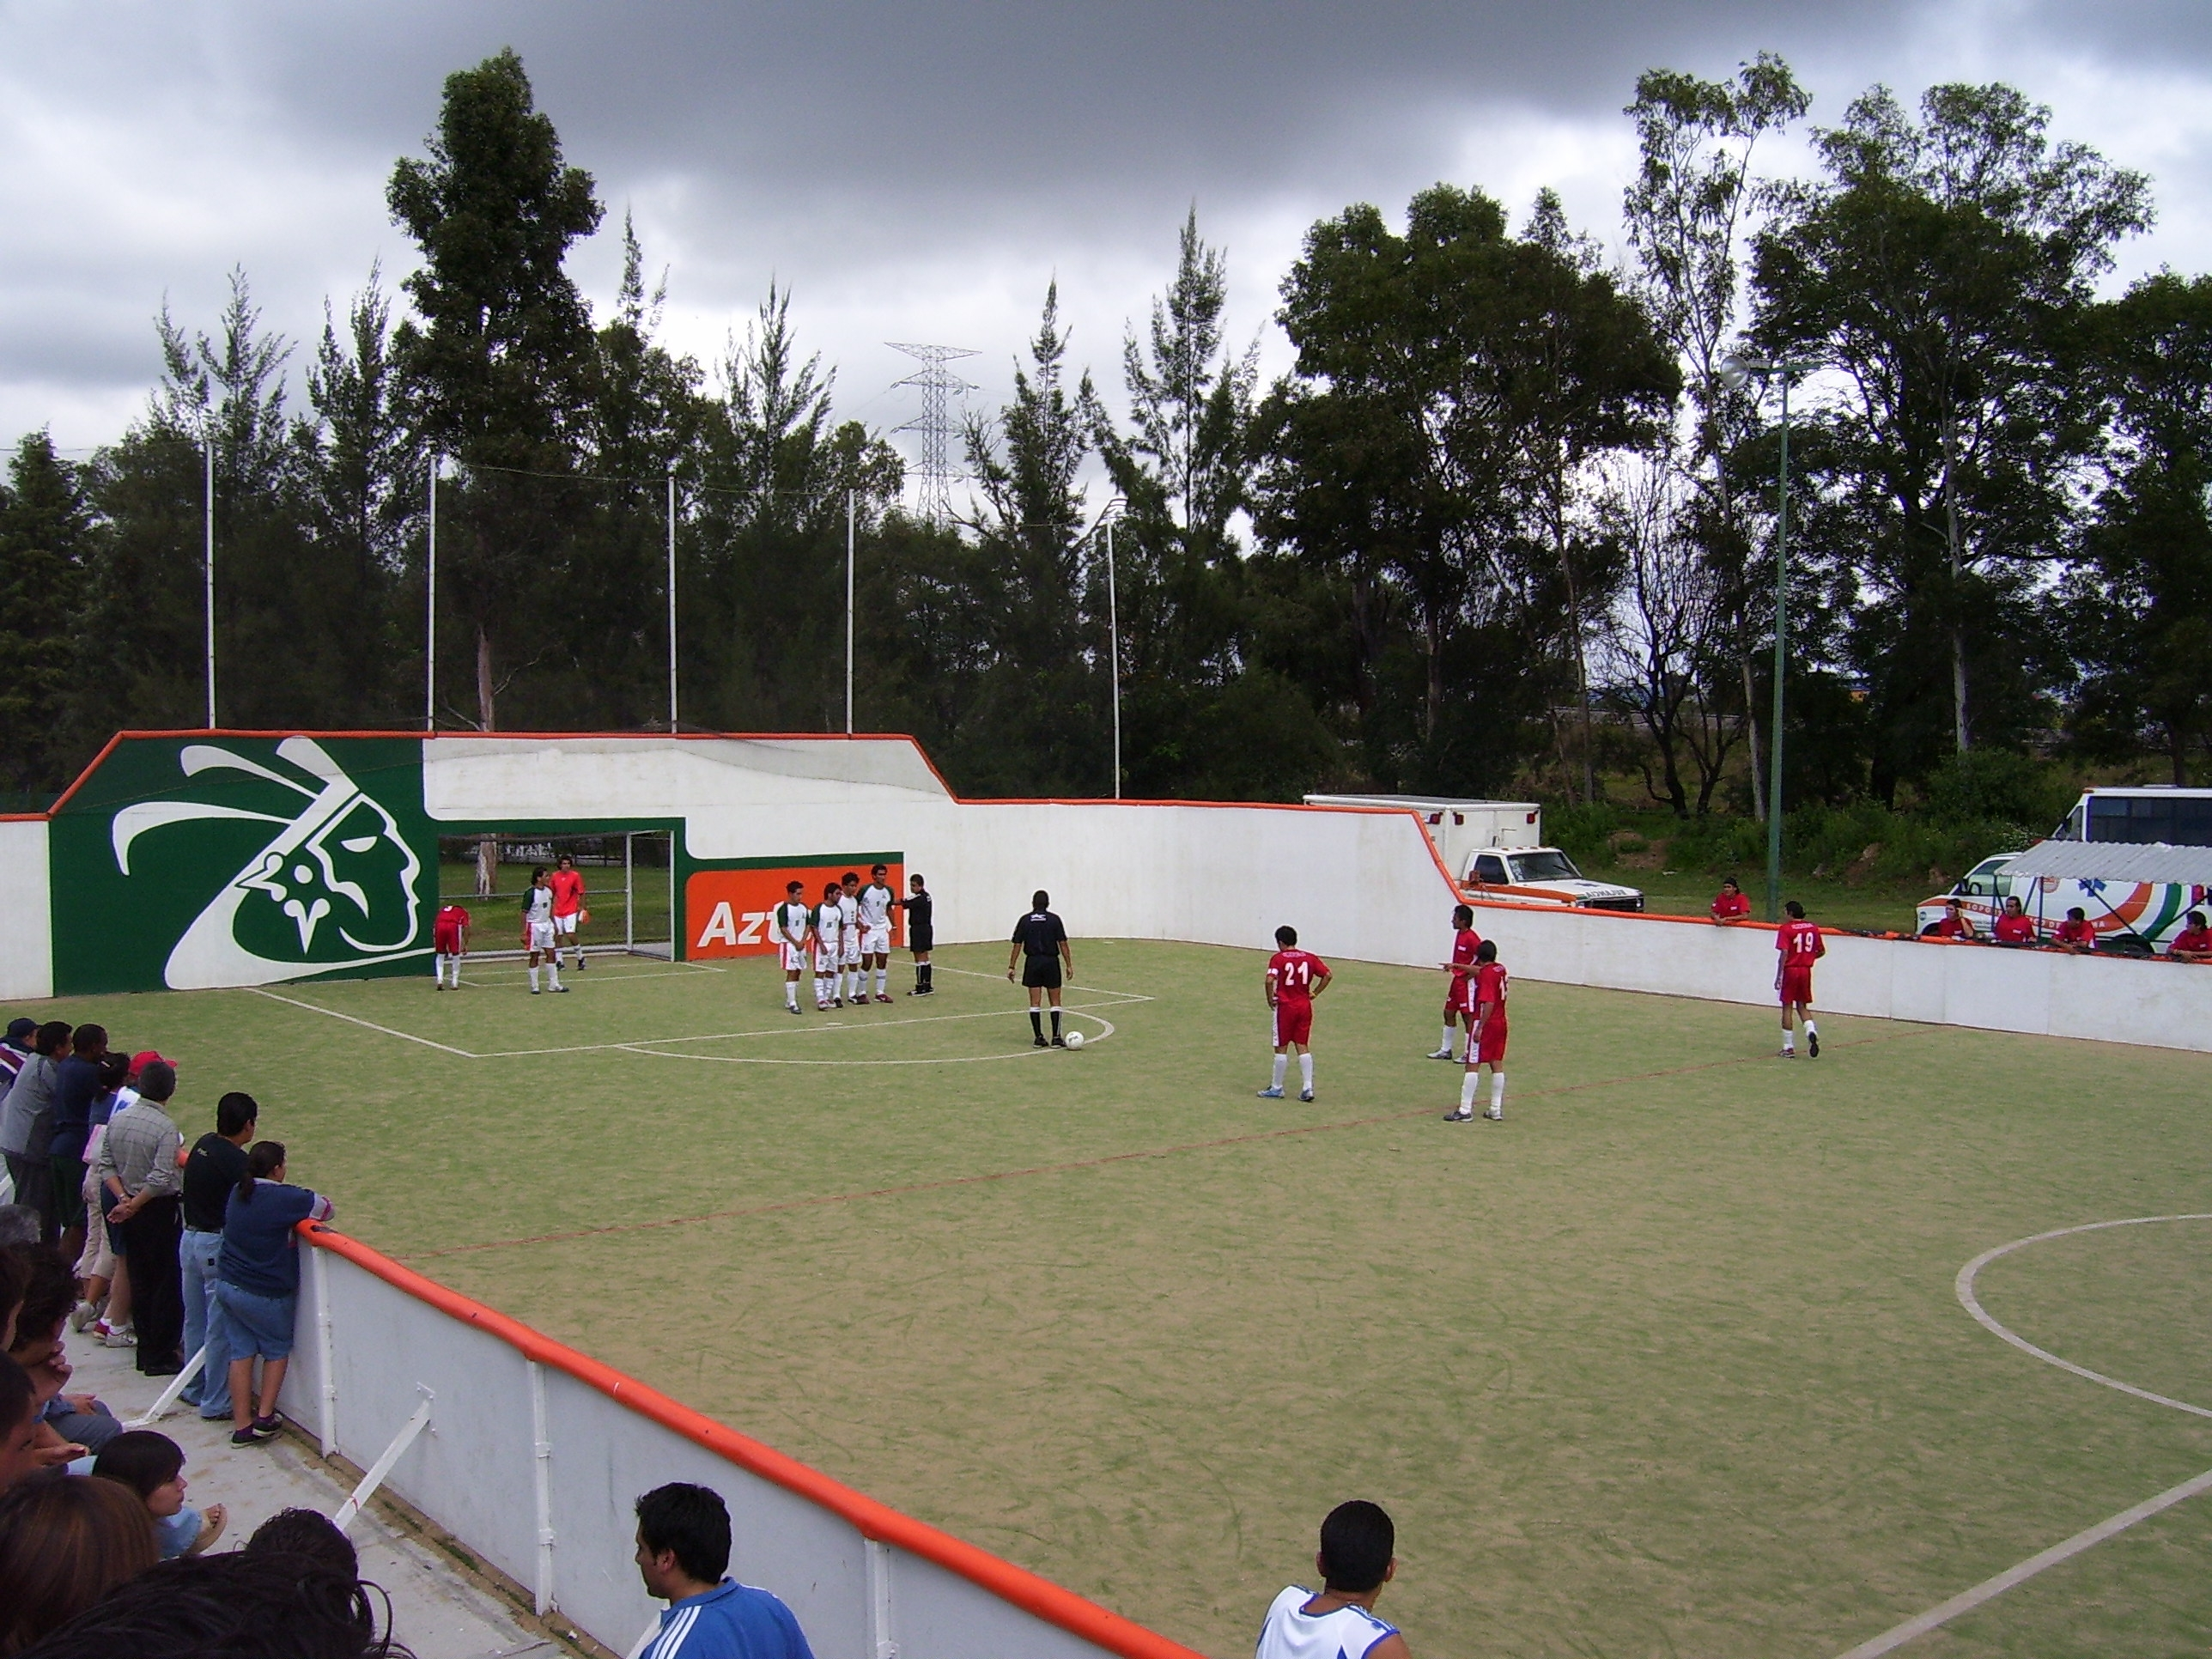 File:Indoor Soccer Game in Mexico.JPG